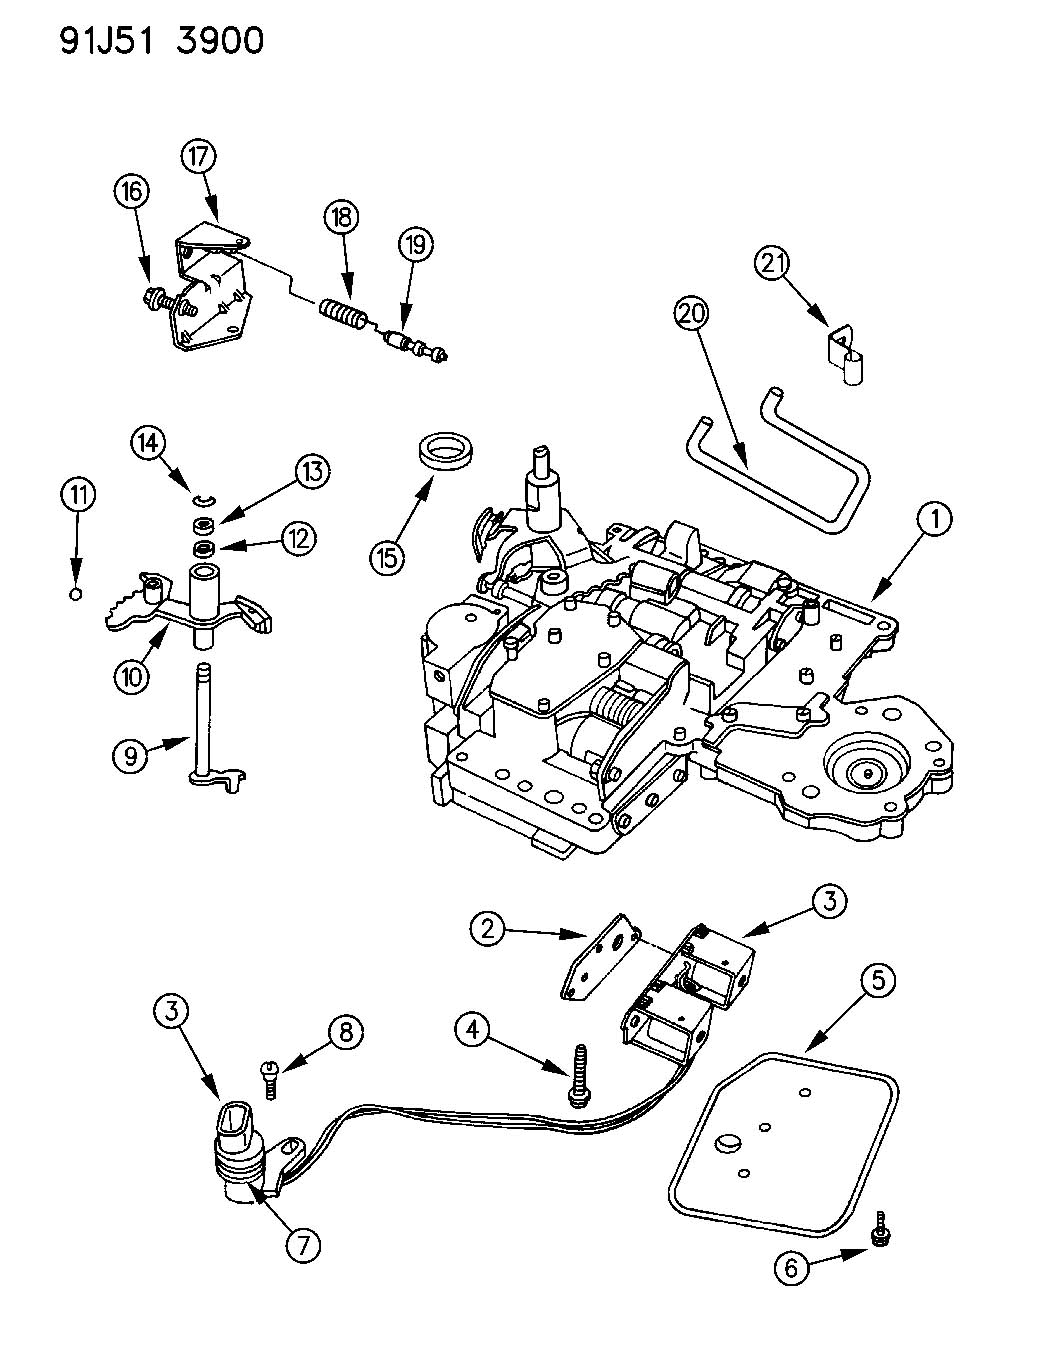 1993 jeep grand cherokee valve body automatic transmission ... jeep transmission schematic